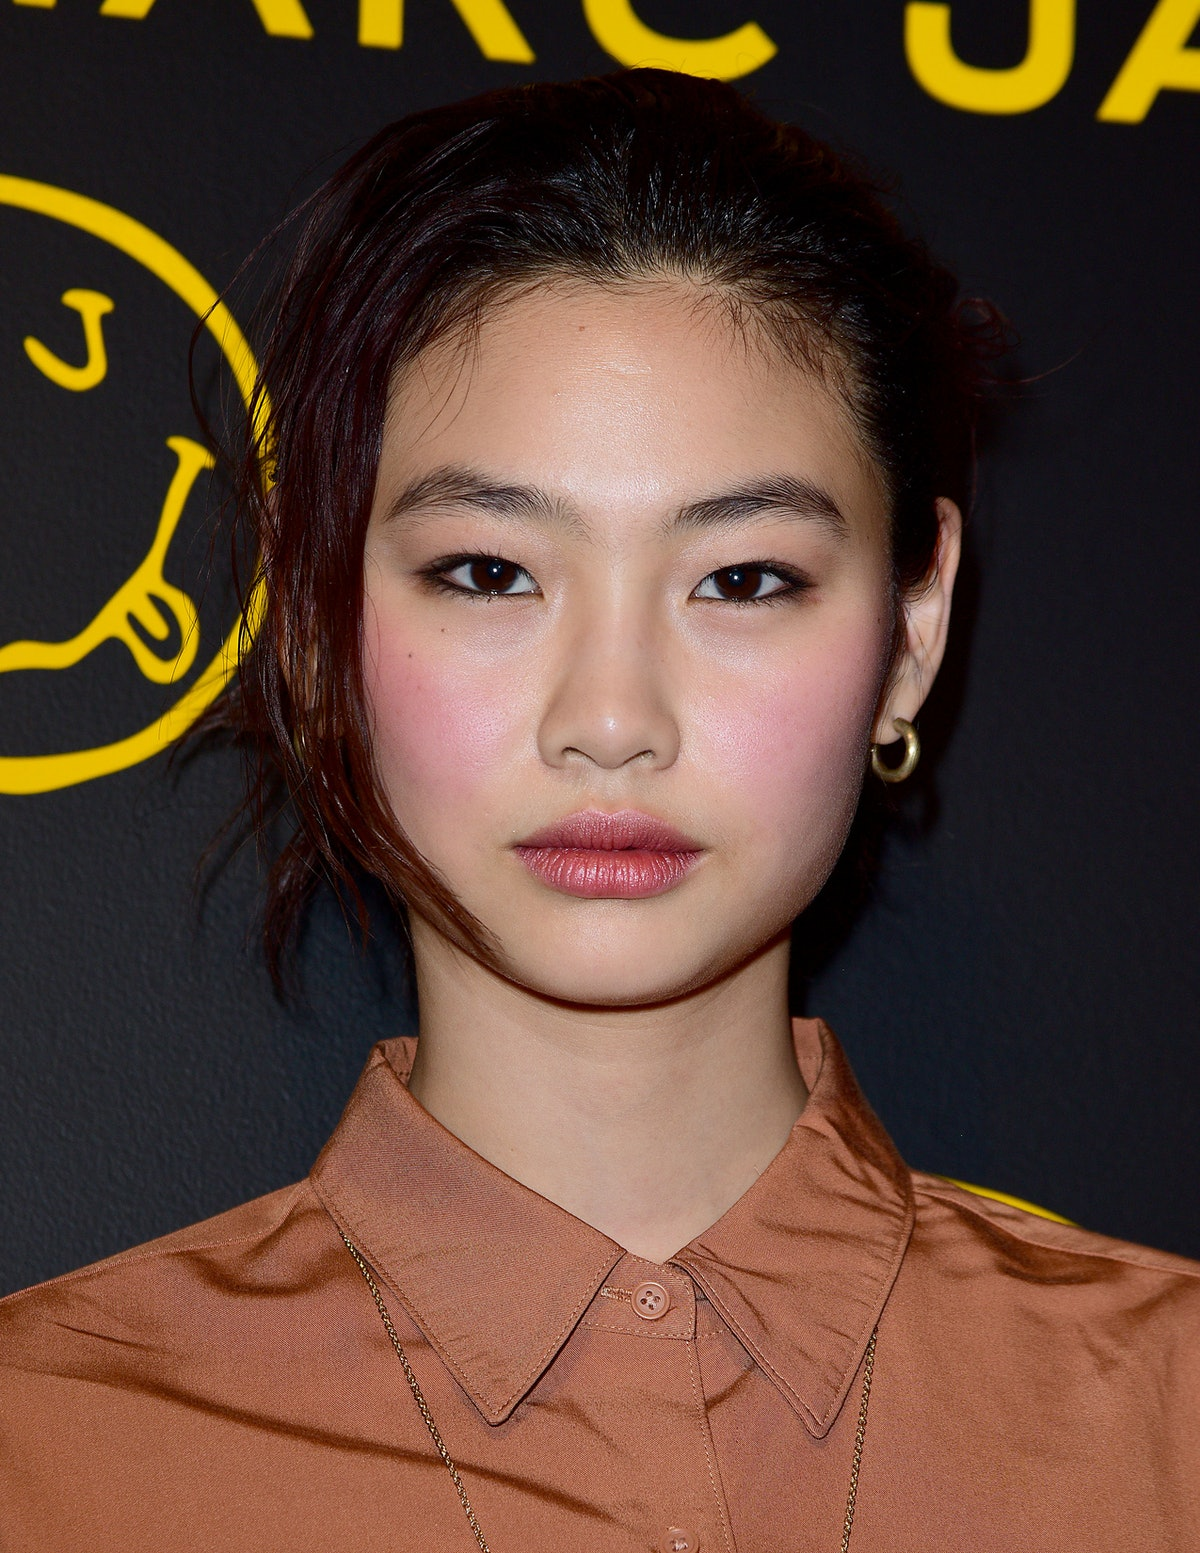 One of 'Squid Game' actor Jung Ho-yeon's best beauty looks: inky black eyeliner and rosy blush.